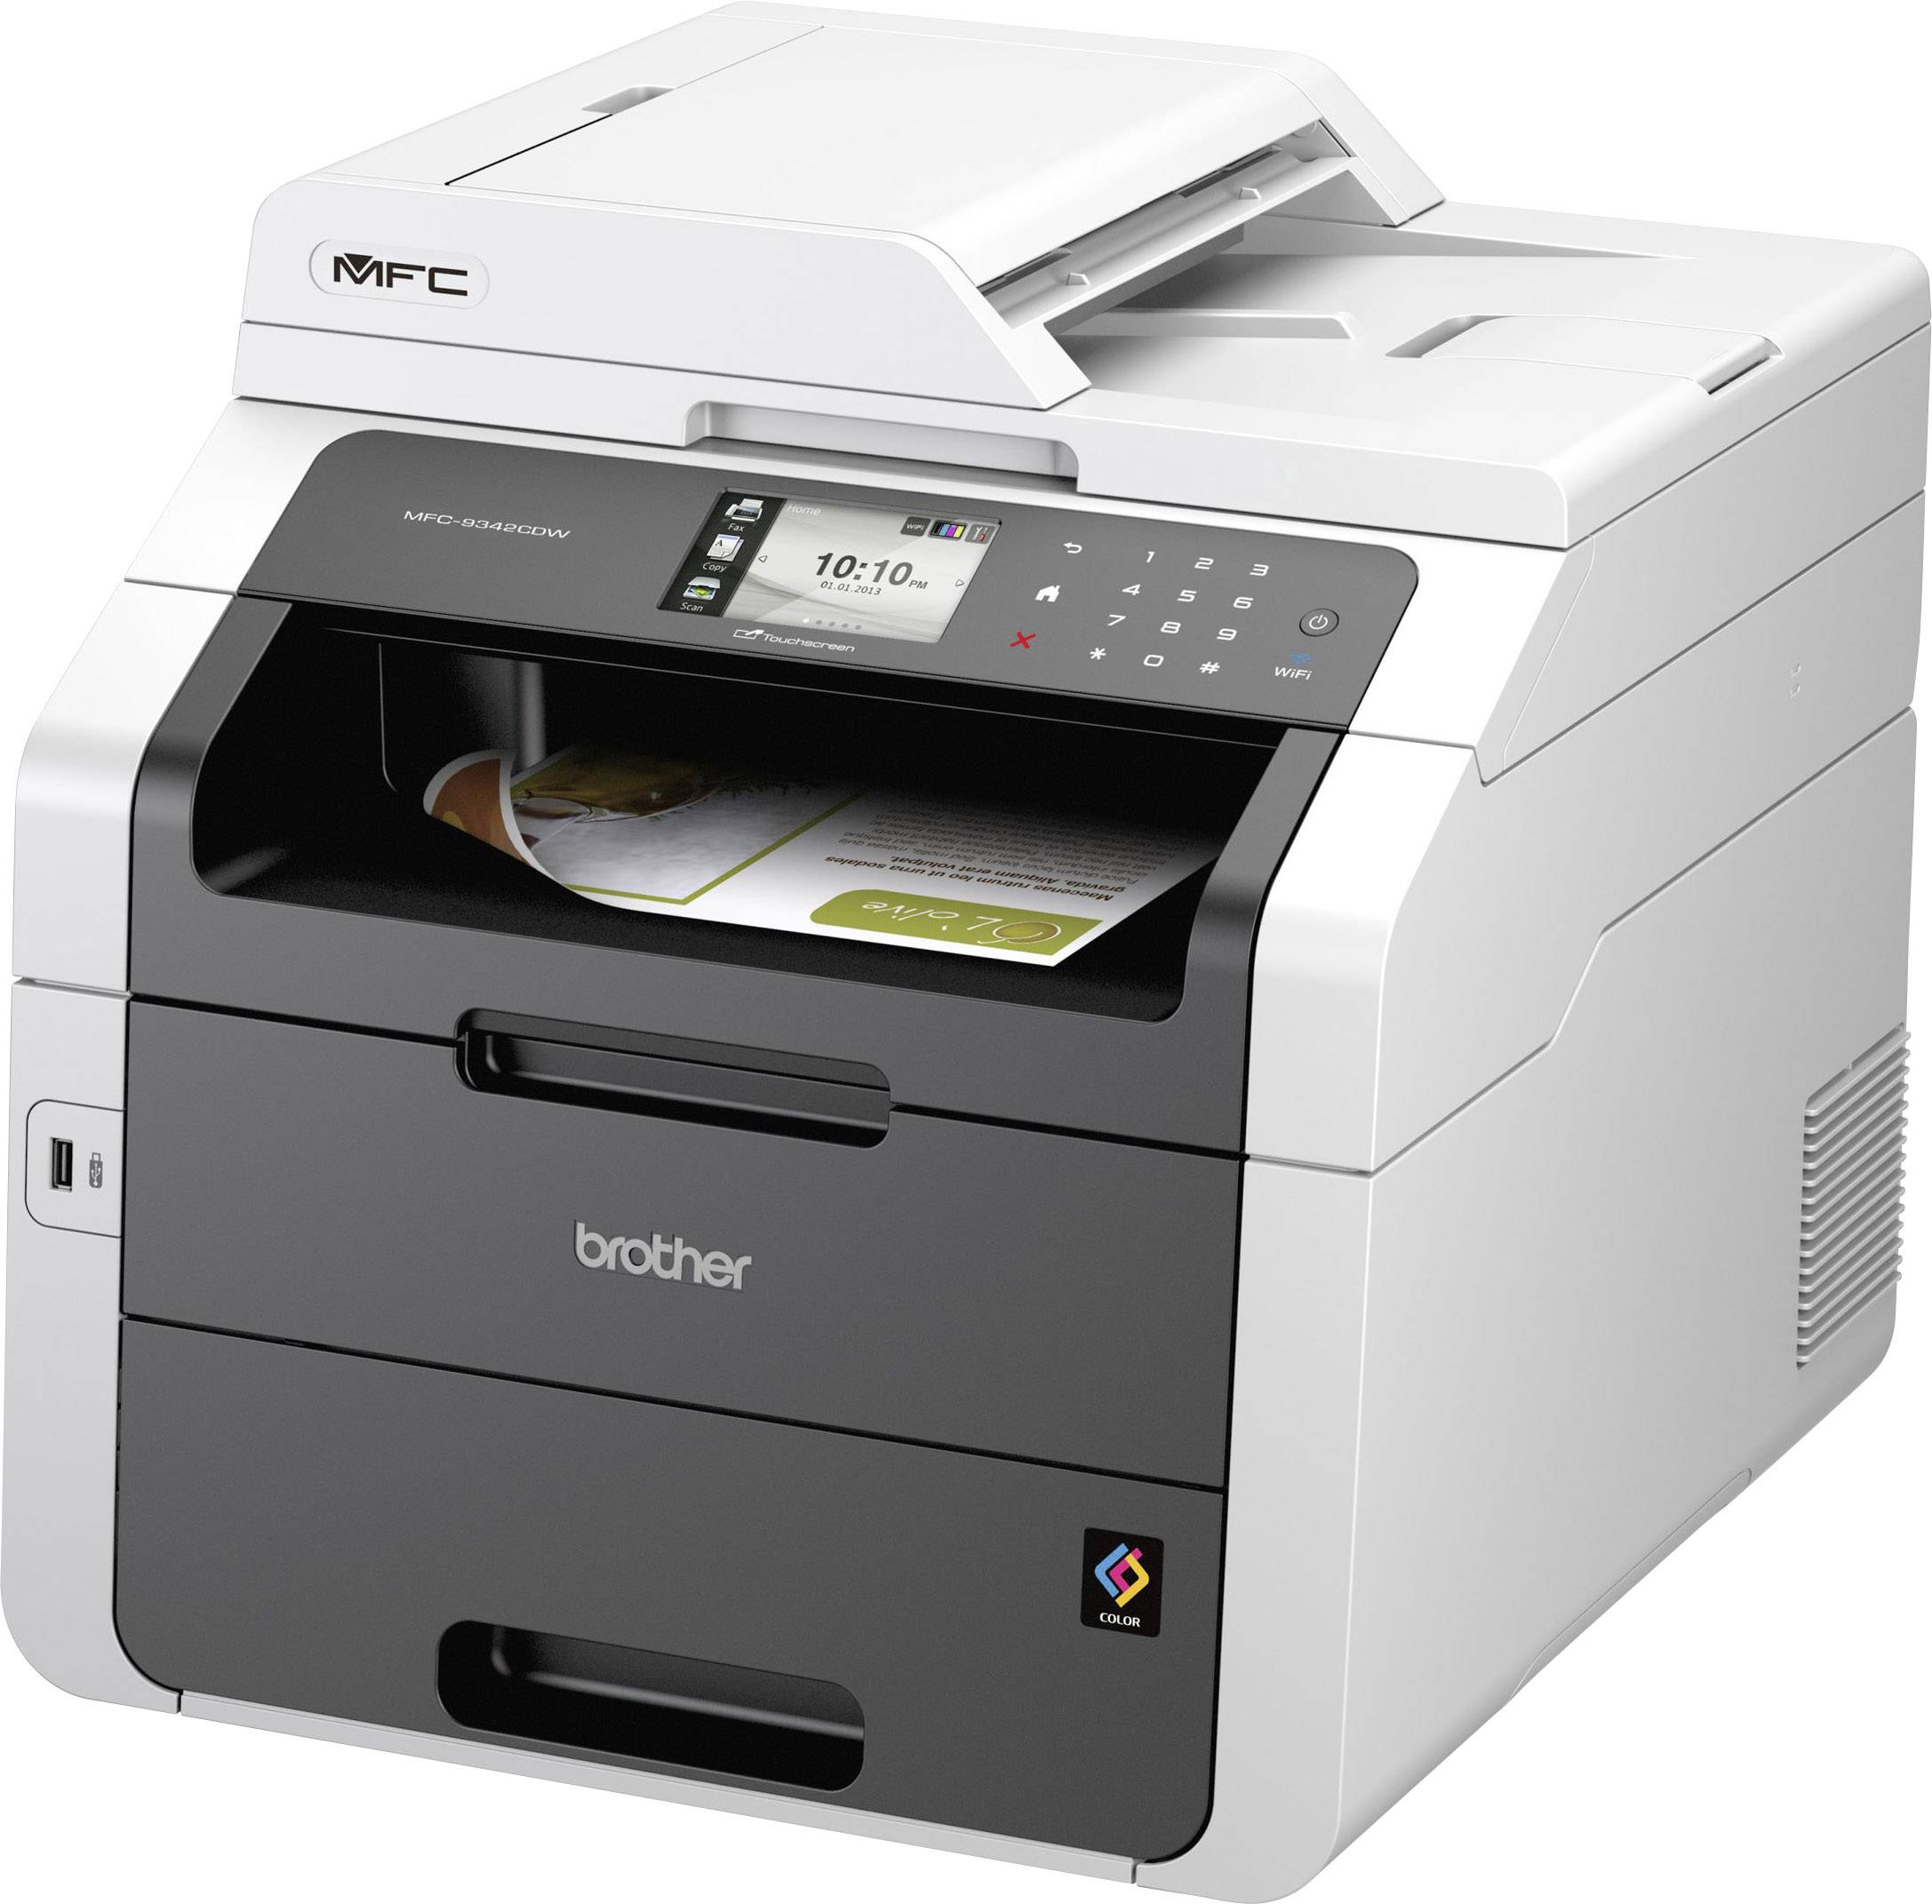 DRIVER UPDATE: BROTHER MFC-9342CDW PRINTER